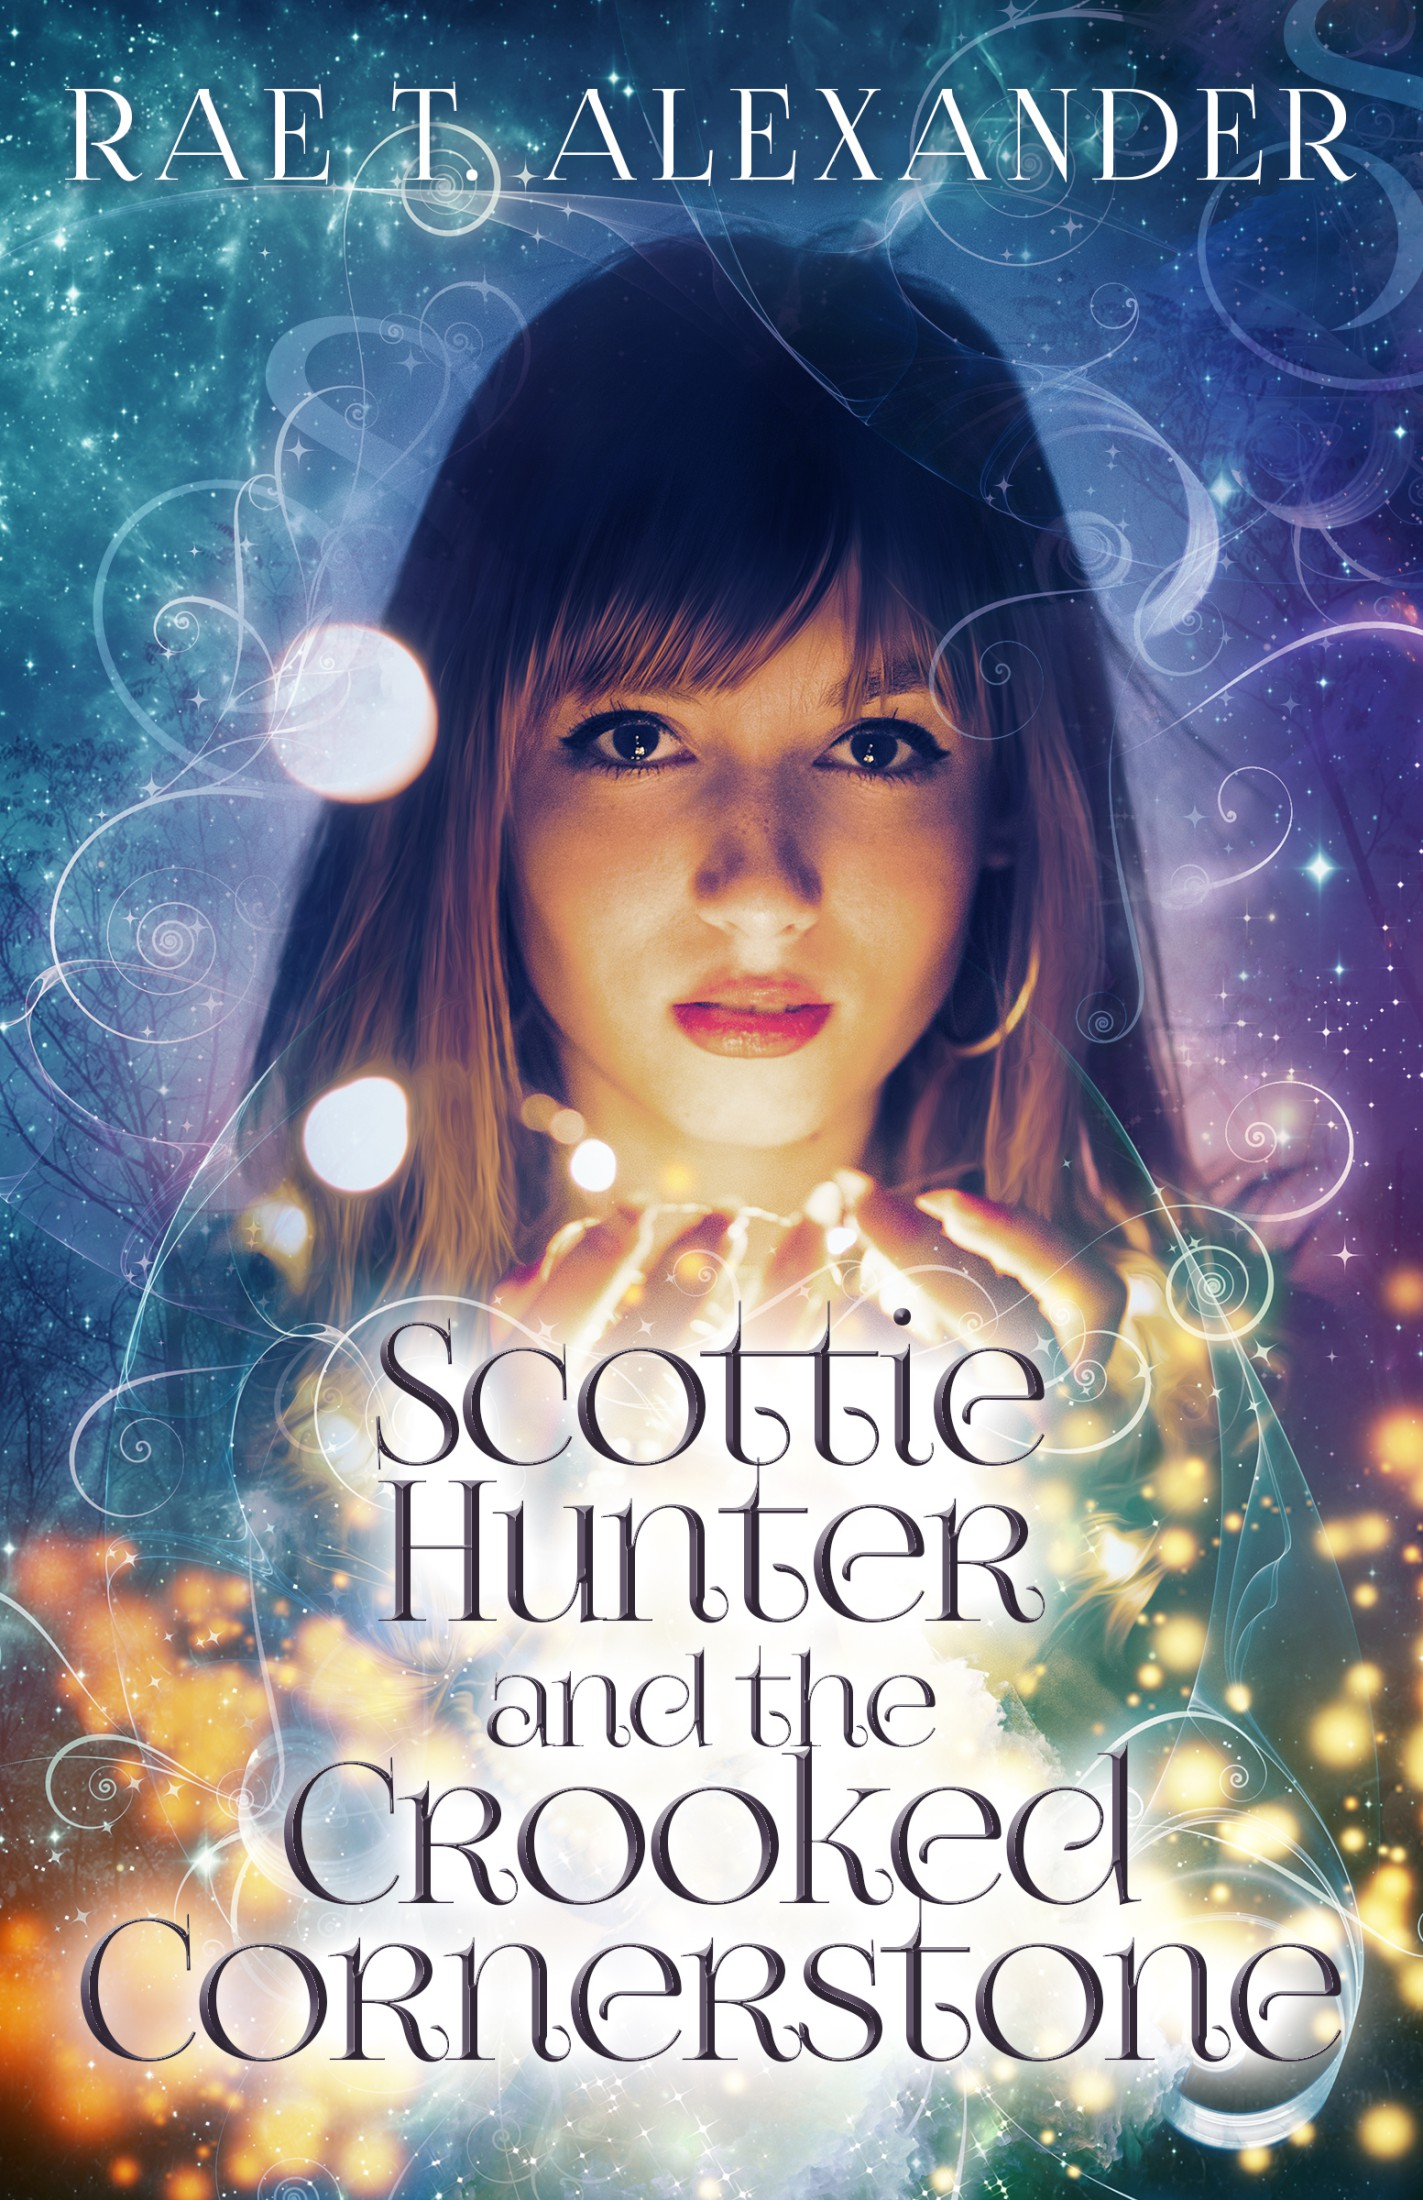 Scottie Hunter and The Crooked Cornersto